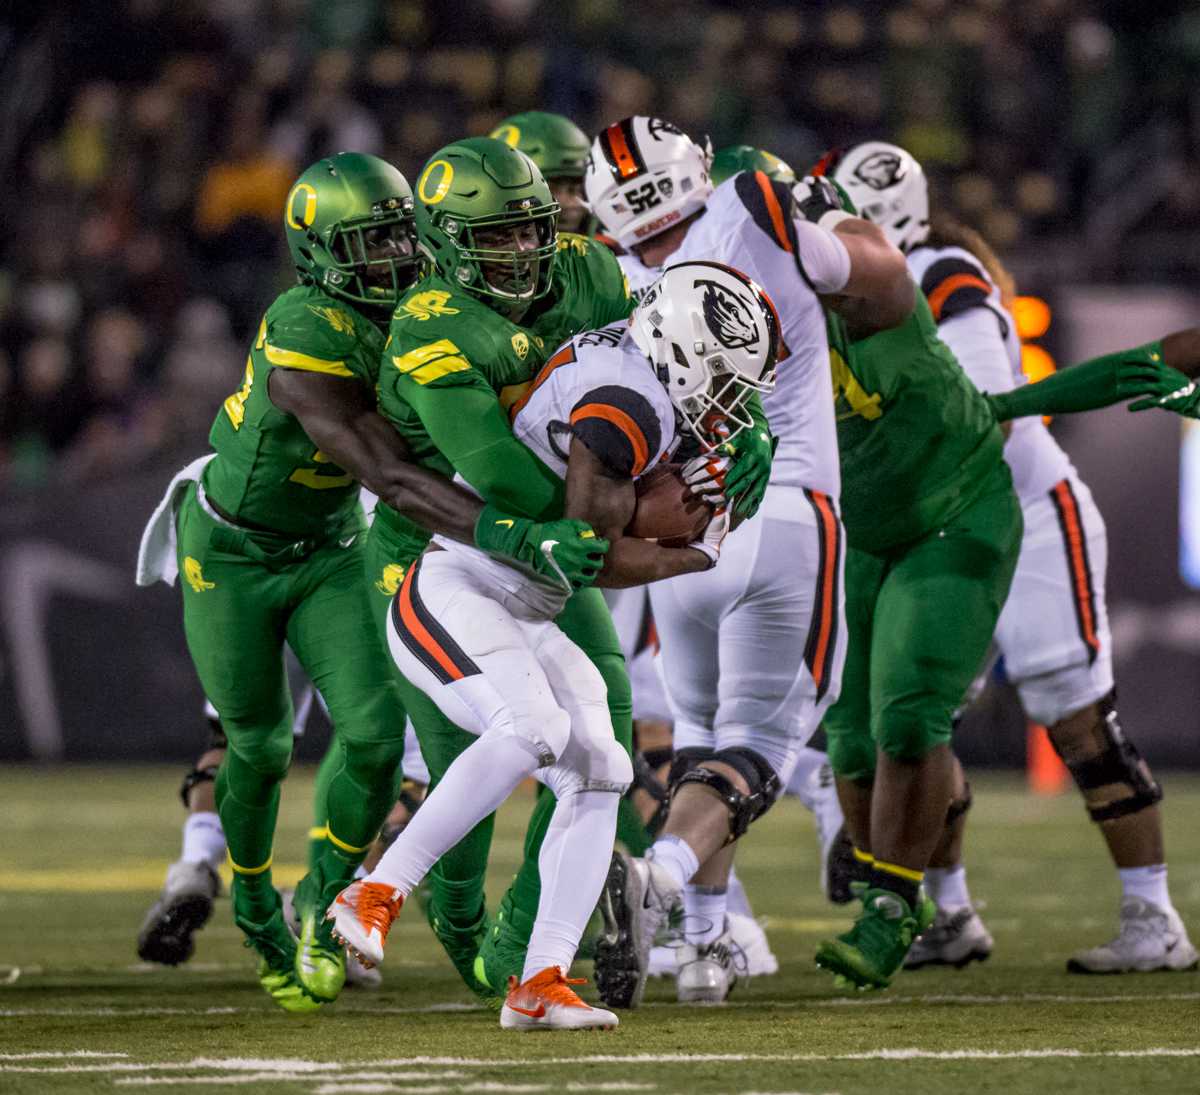 Oregon defenders bring down Oregon State running back Artavis Pierce (#21). The Oregon Ducks defeated the Oregon State Beavers 69 to 10 in the 121st Civil War game at Autzen Stadium in Eugene, Ore. on Saturday November 25, 2017. Photo by Ben Lonergan, Oregon News Lab